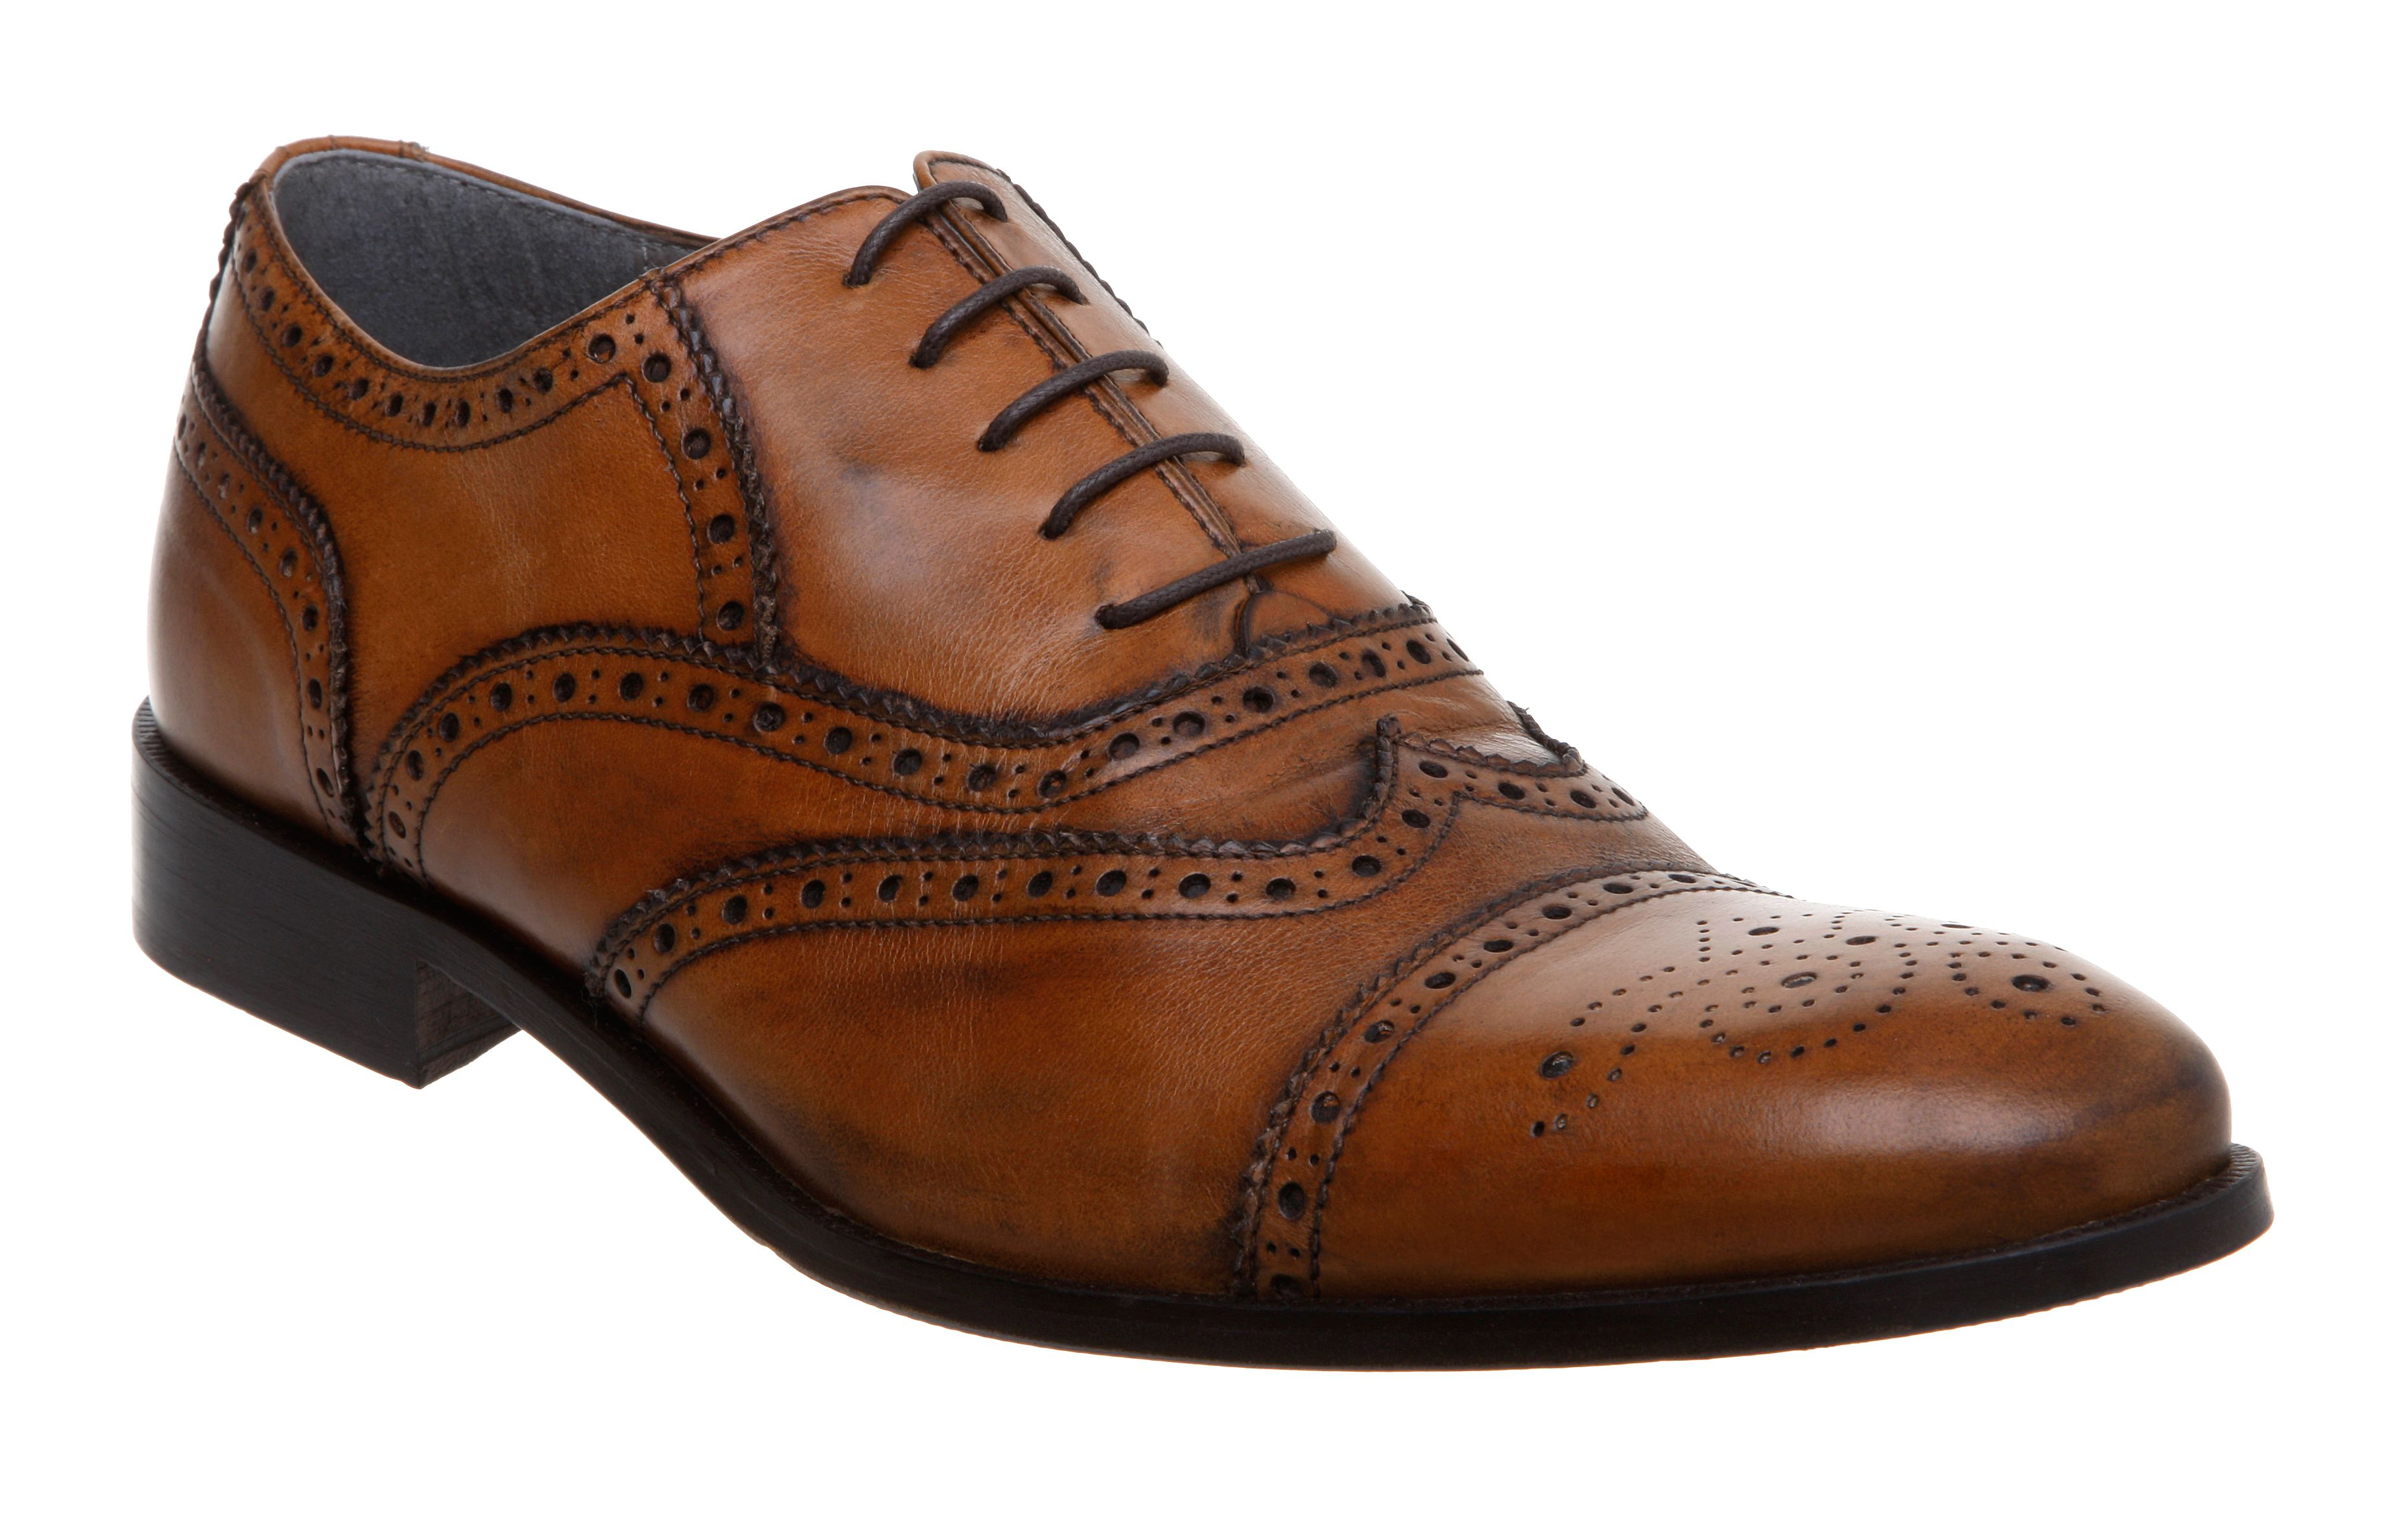 Brake wingtip brogue lace up shoes